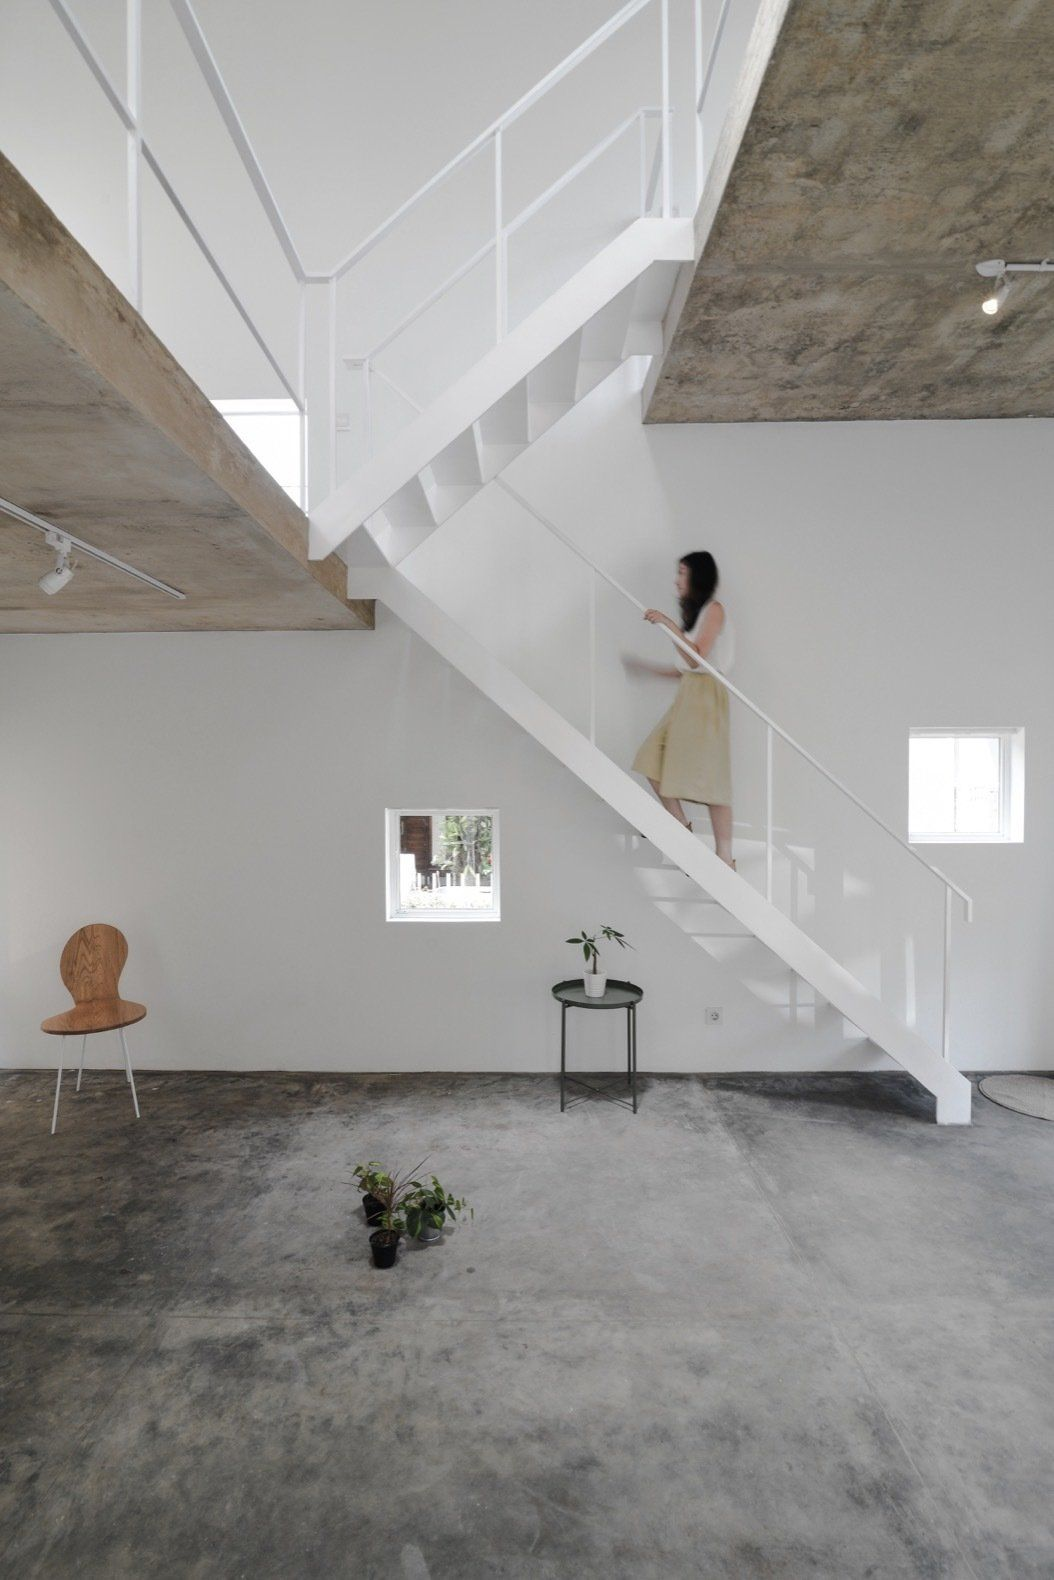 Staircase metal railing and metal tread open tread stairs link the three floors photo 5 of 12 in this skinny minimalist home gets a modern revamp for